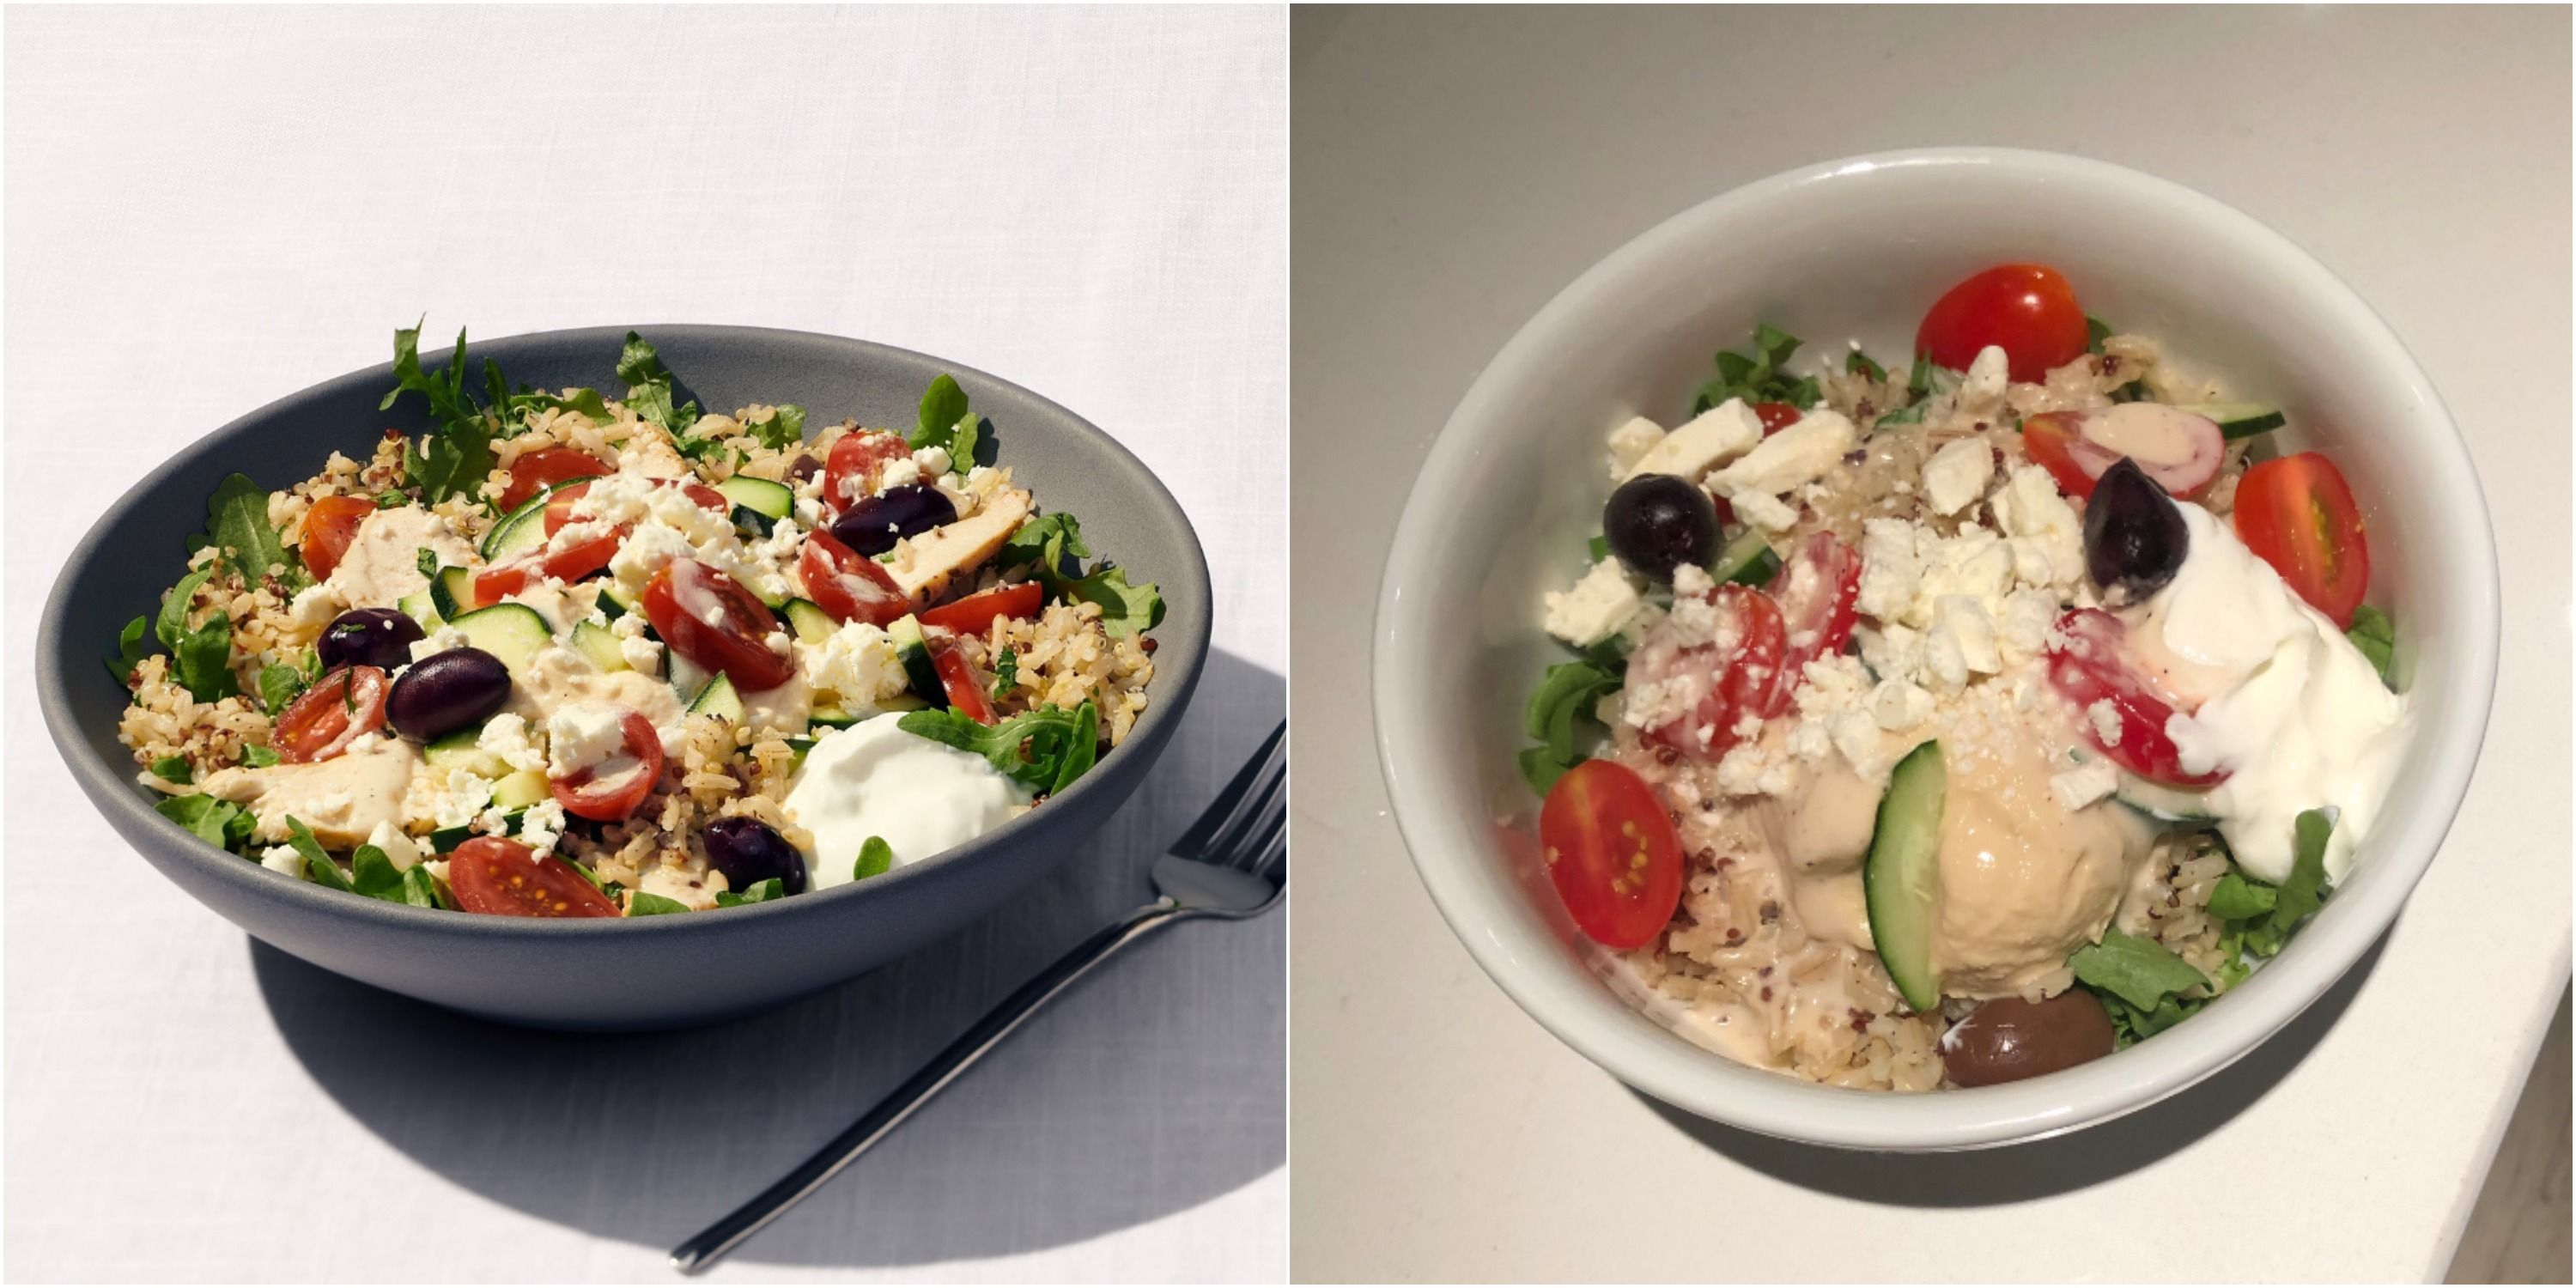 Panera Has 2 New Grain Bowls On Its Menu And We Tried Them Out For Ourselves